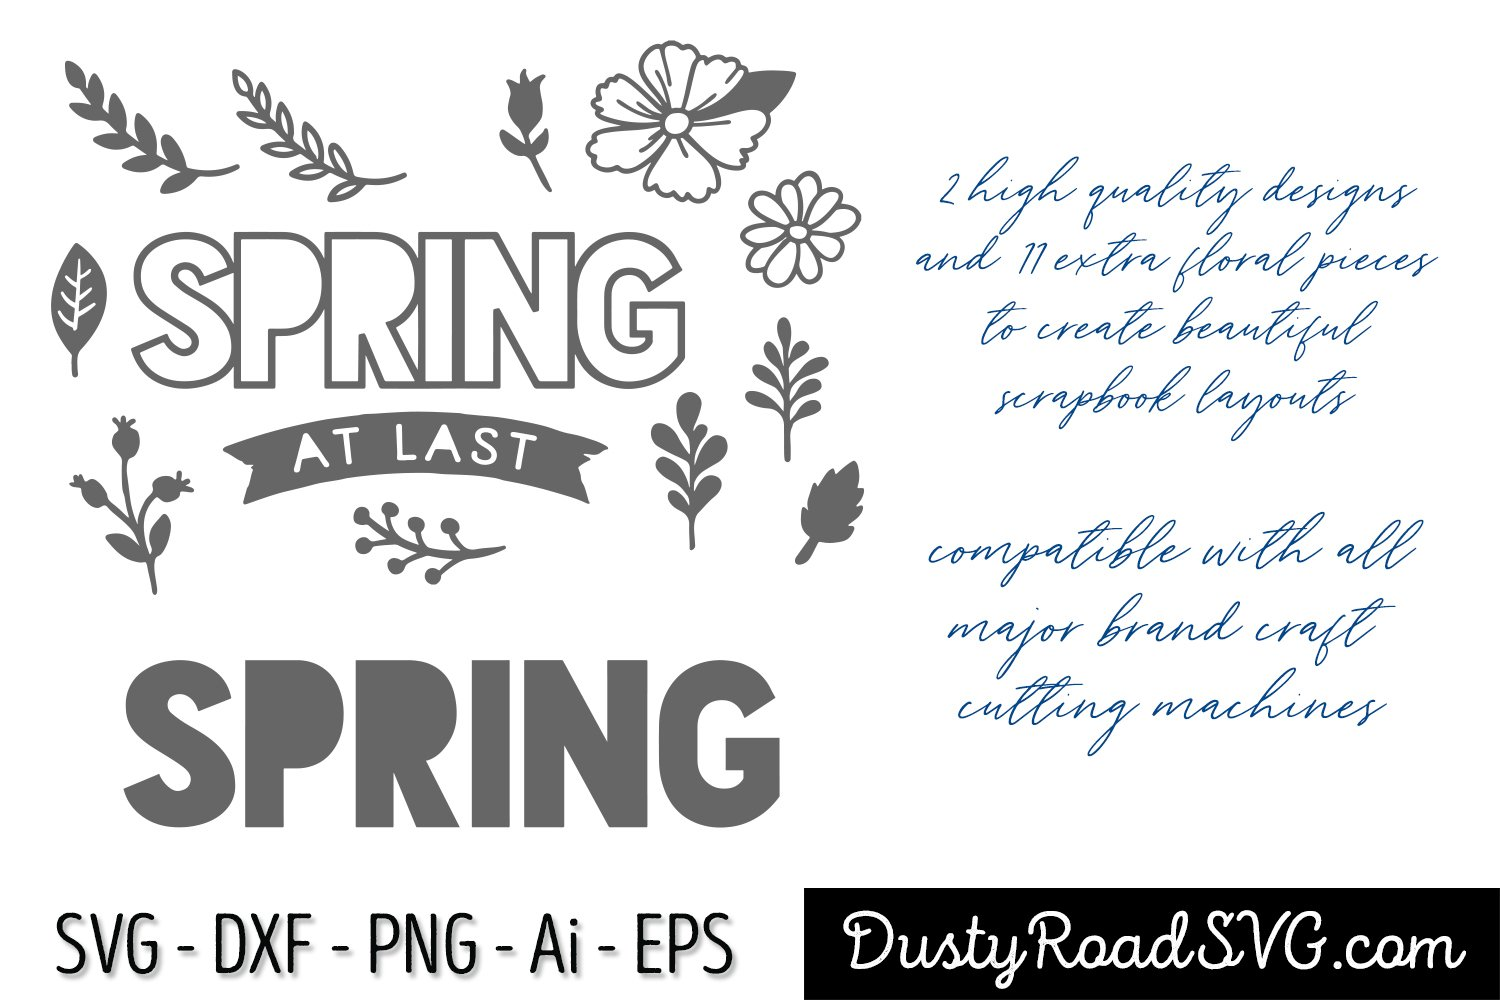 SPRING AT LAST - Scrapbook - cut file - svg png eps dxf example image 2